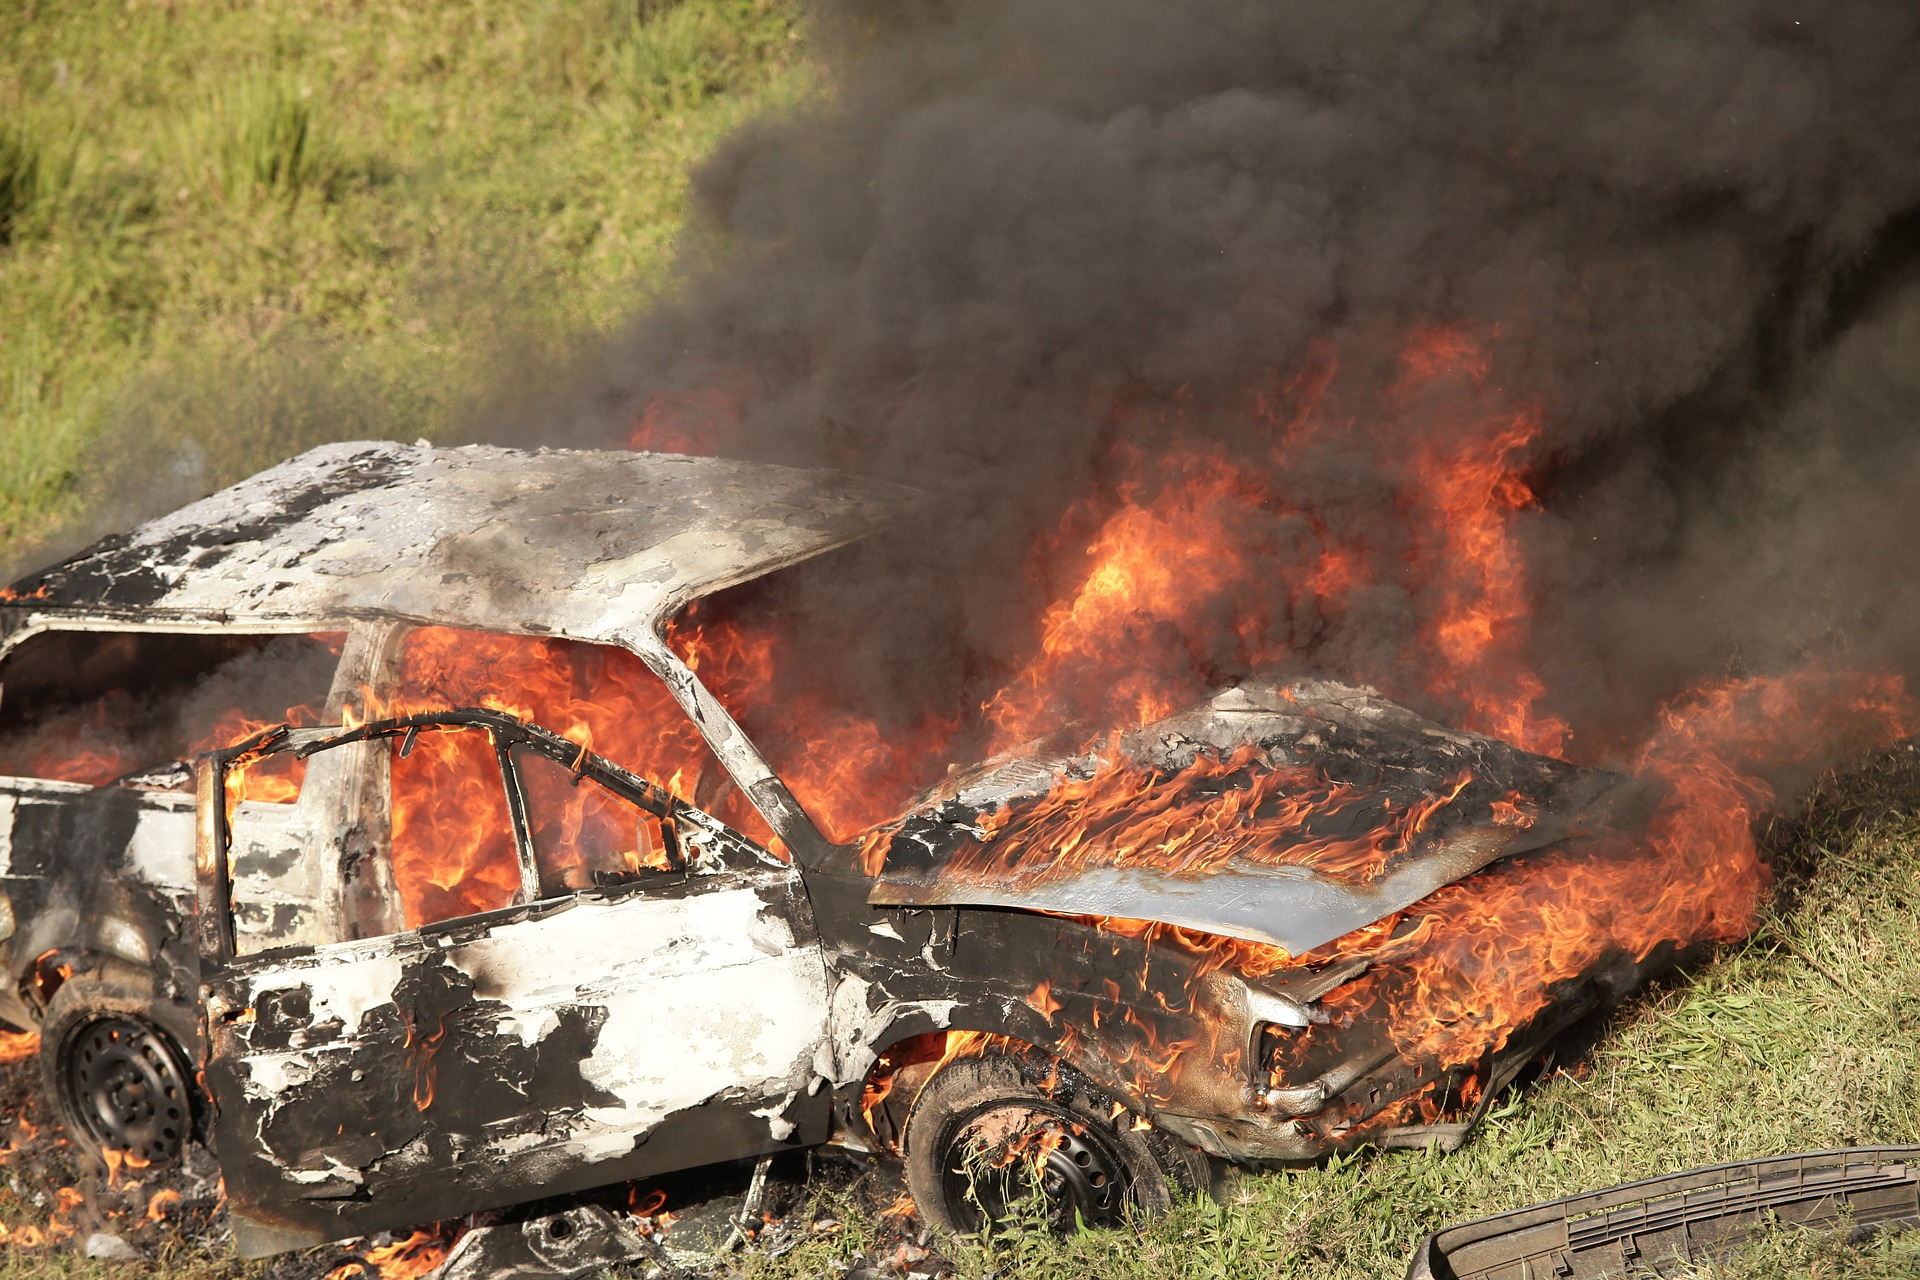 The Car's on Fire: Tips for Reacting and Responding to a Vehicle Fire